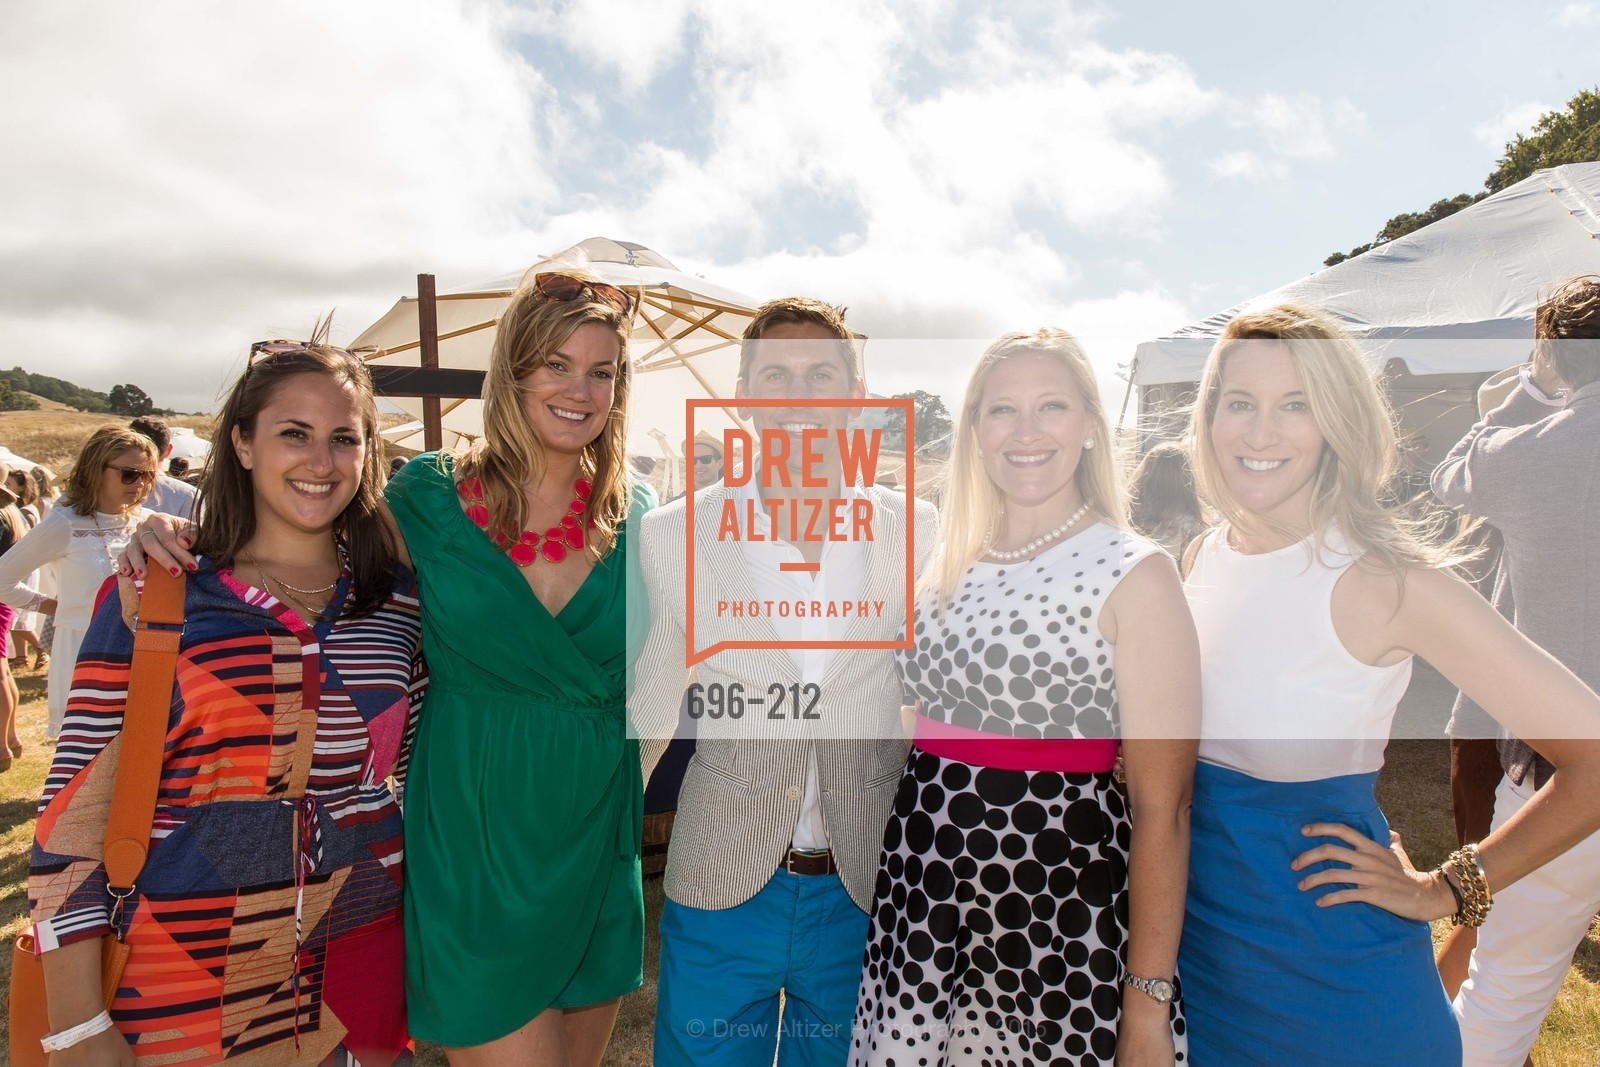 Brenna O'Neill, Lindsey Collins, Russ Keil, Myka Keil, Kat Starr, Stick & Ball Oyster Cup Polo Tournament, Cerro Pampa Polo Club, July 25th, 2015,Drew Altizer, Drew Altizer Photography, full-service event agency, private events, San Francisco photographer, photographer California